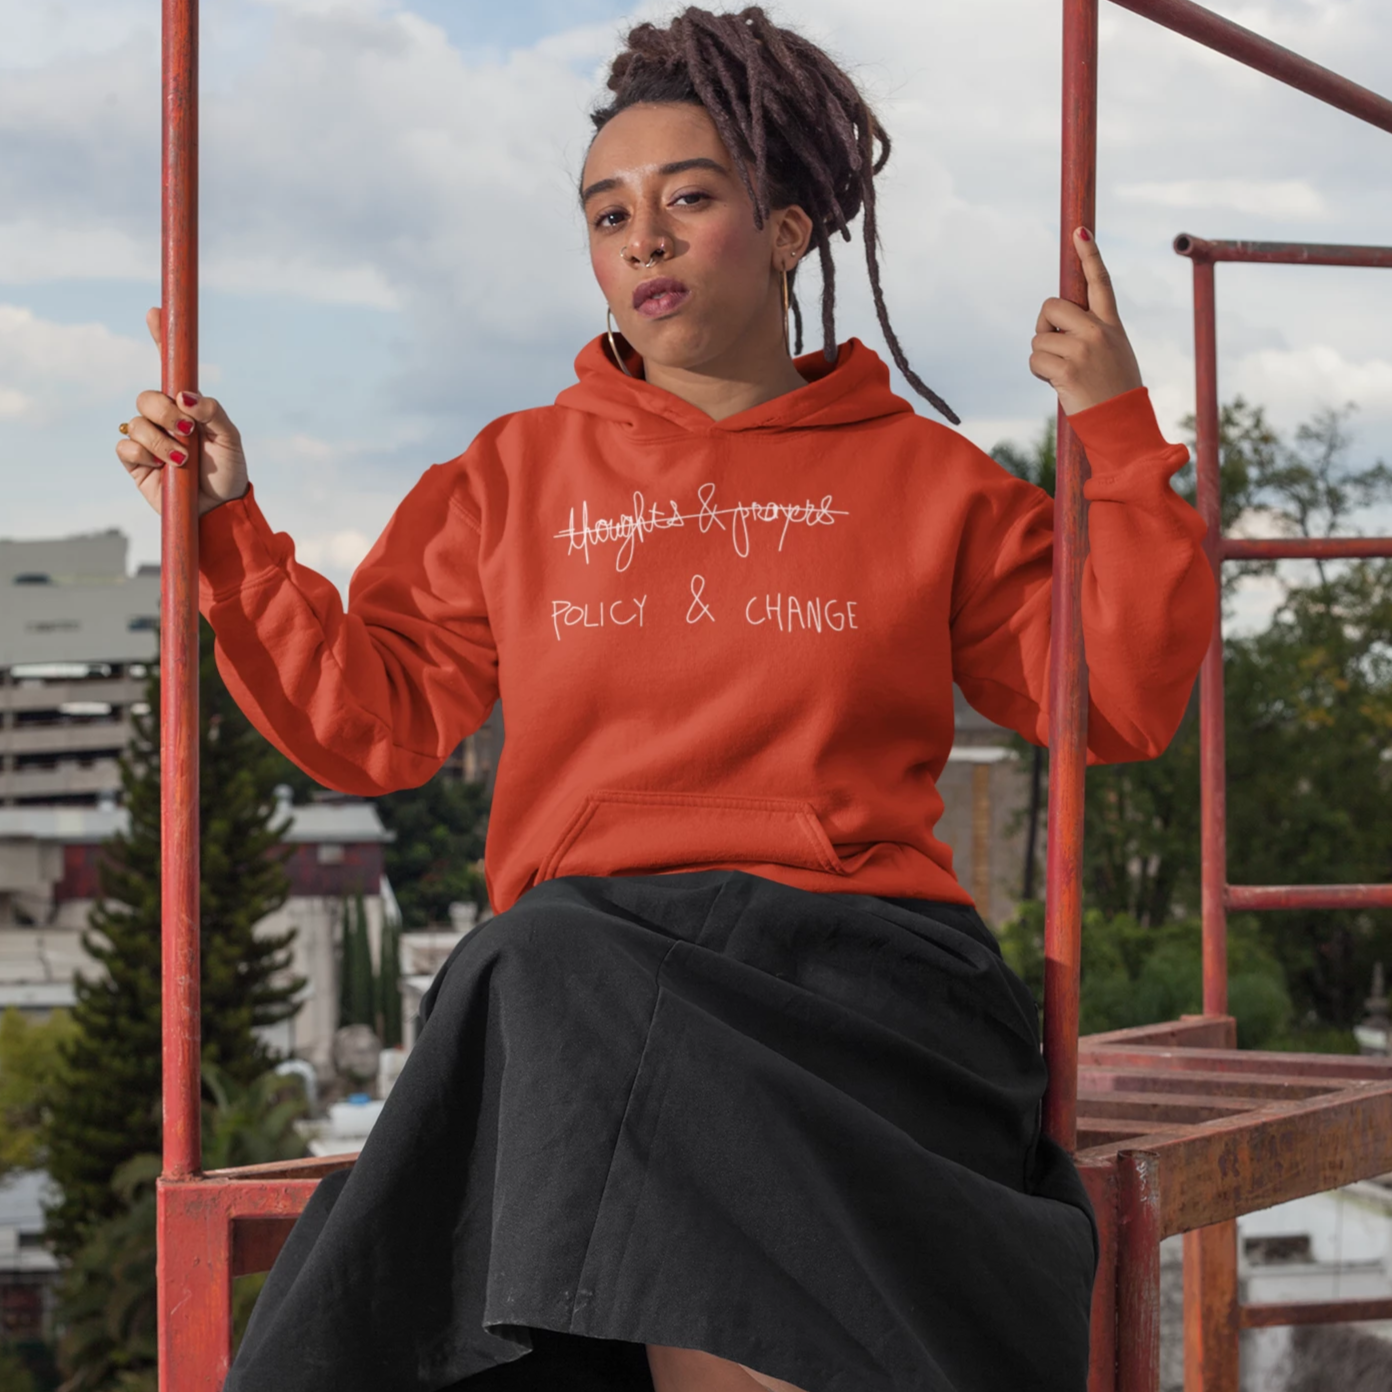 Policy & Change Hoodie